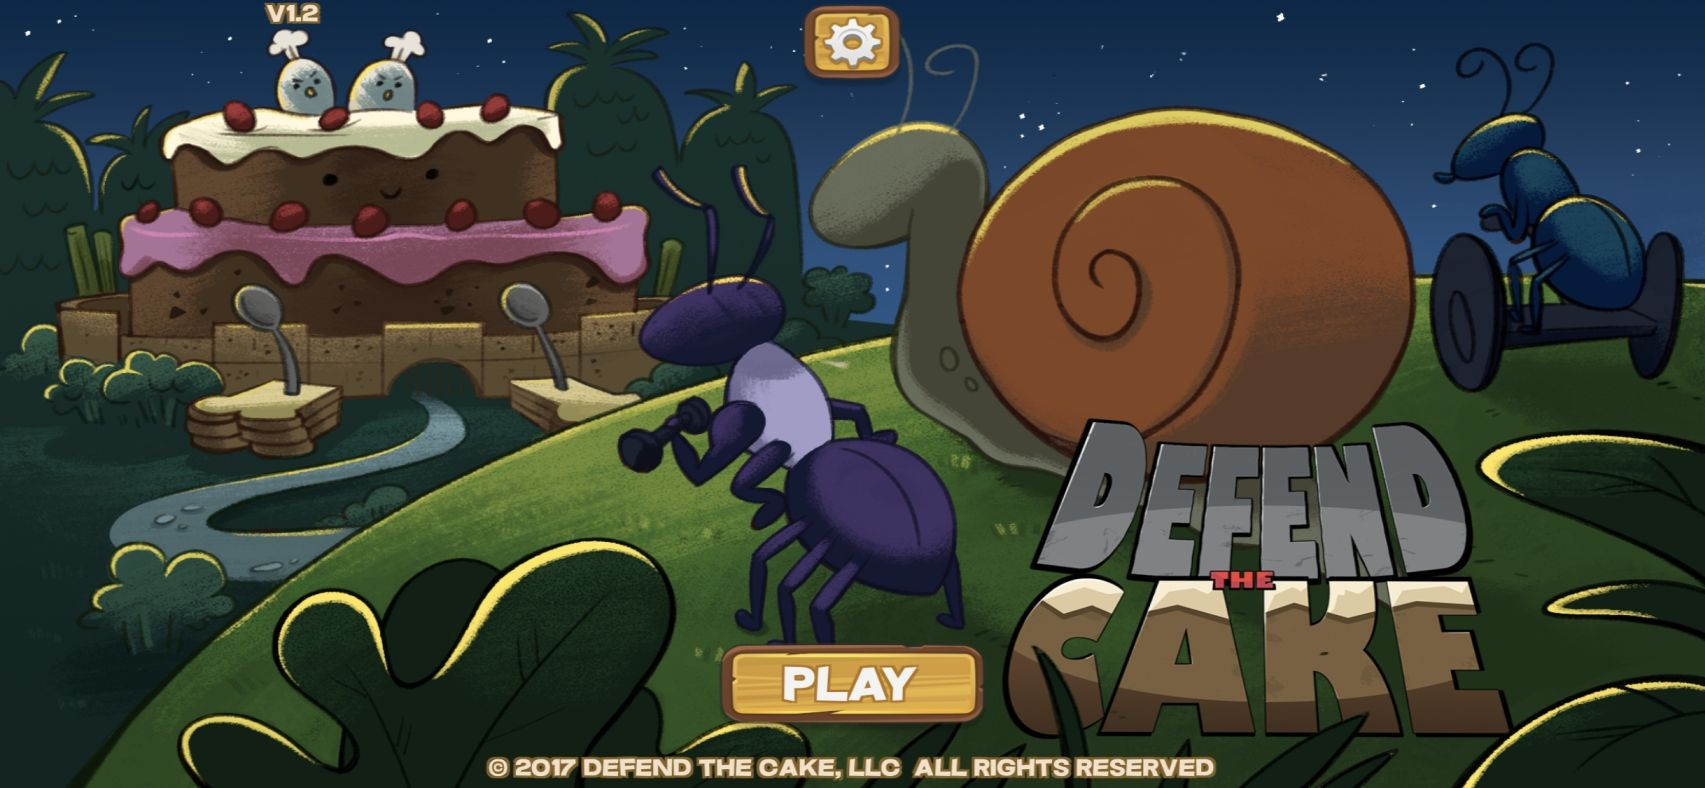 Defend the Cake Tower Defense (copie d'écran 1 sur iPhone / iPad)